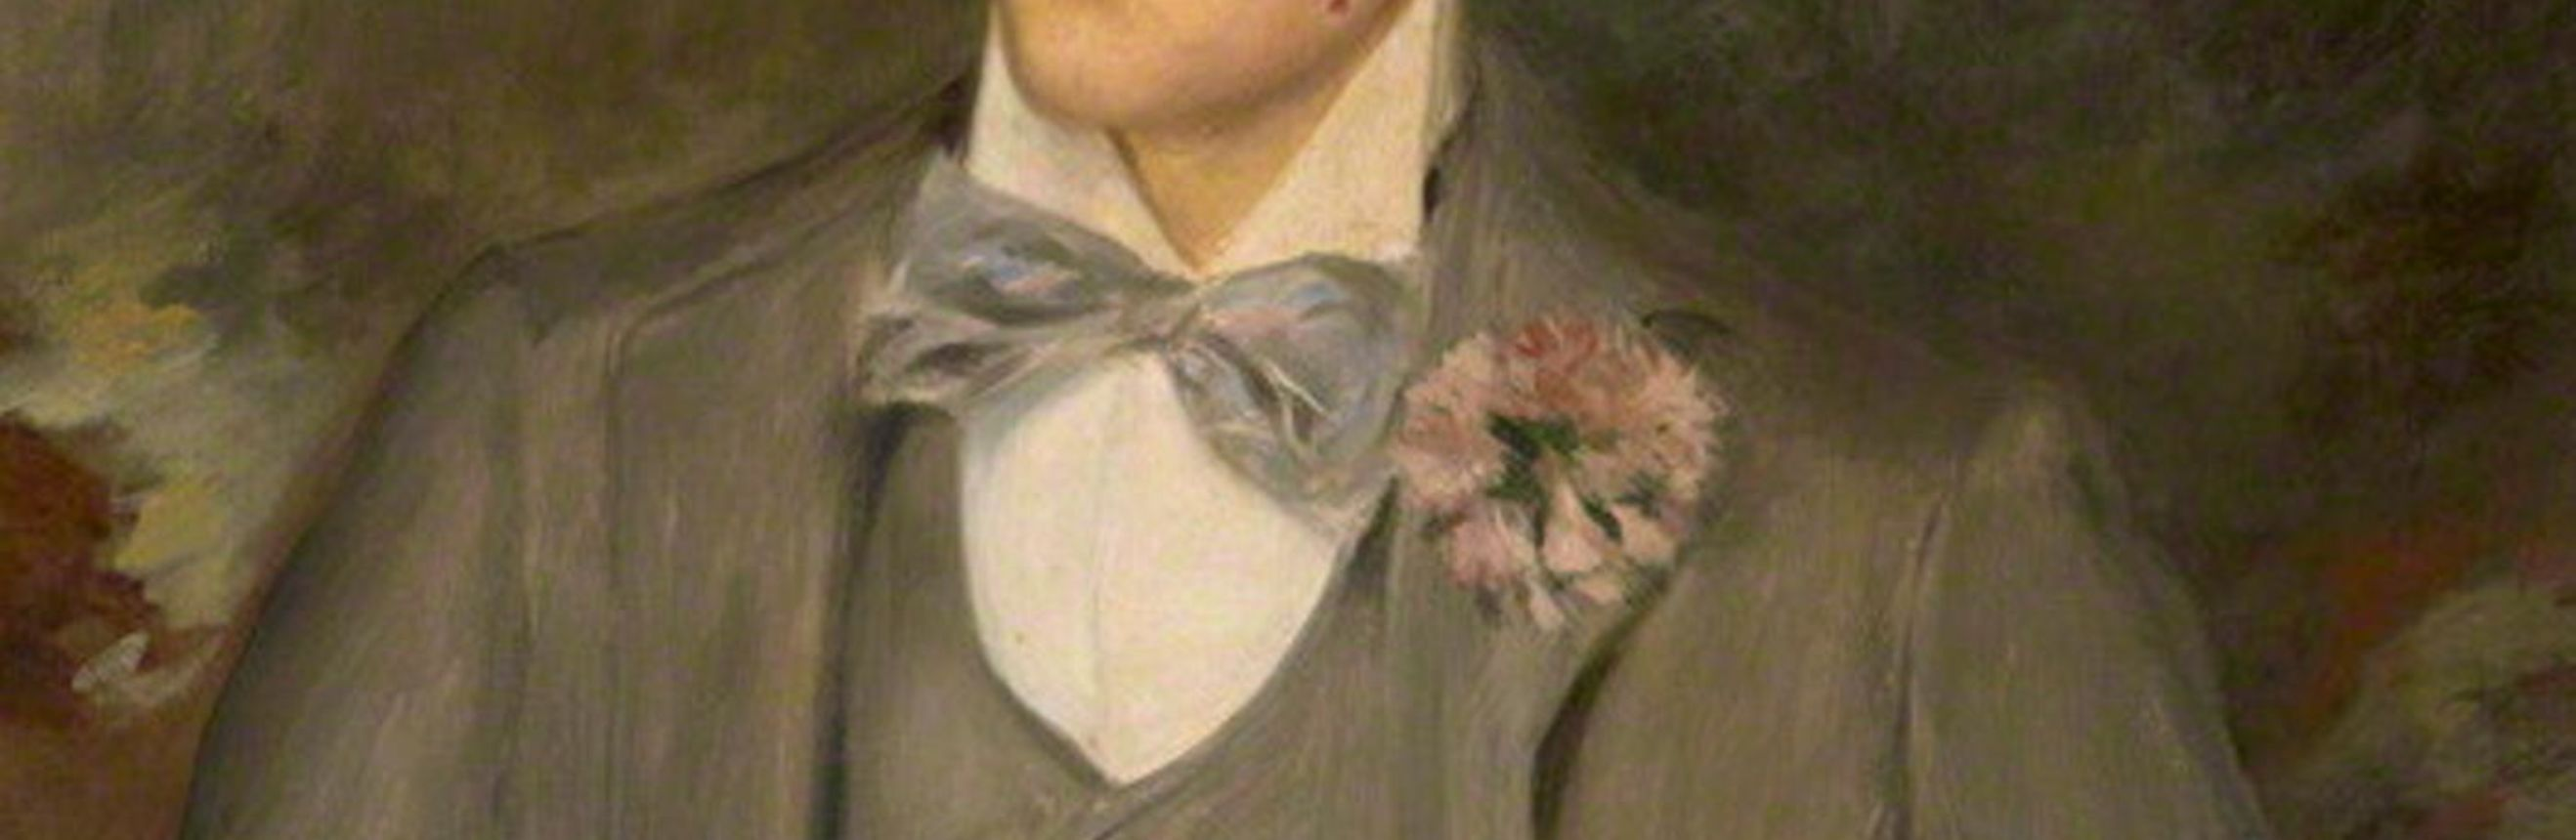 The cover for the Standard Ebooks edition of The Importance of Being Earnest, by Oscar Wilde